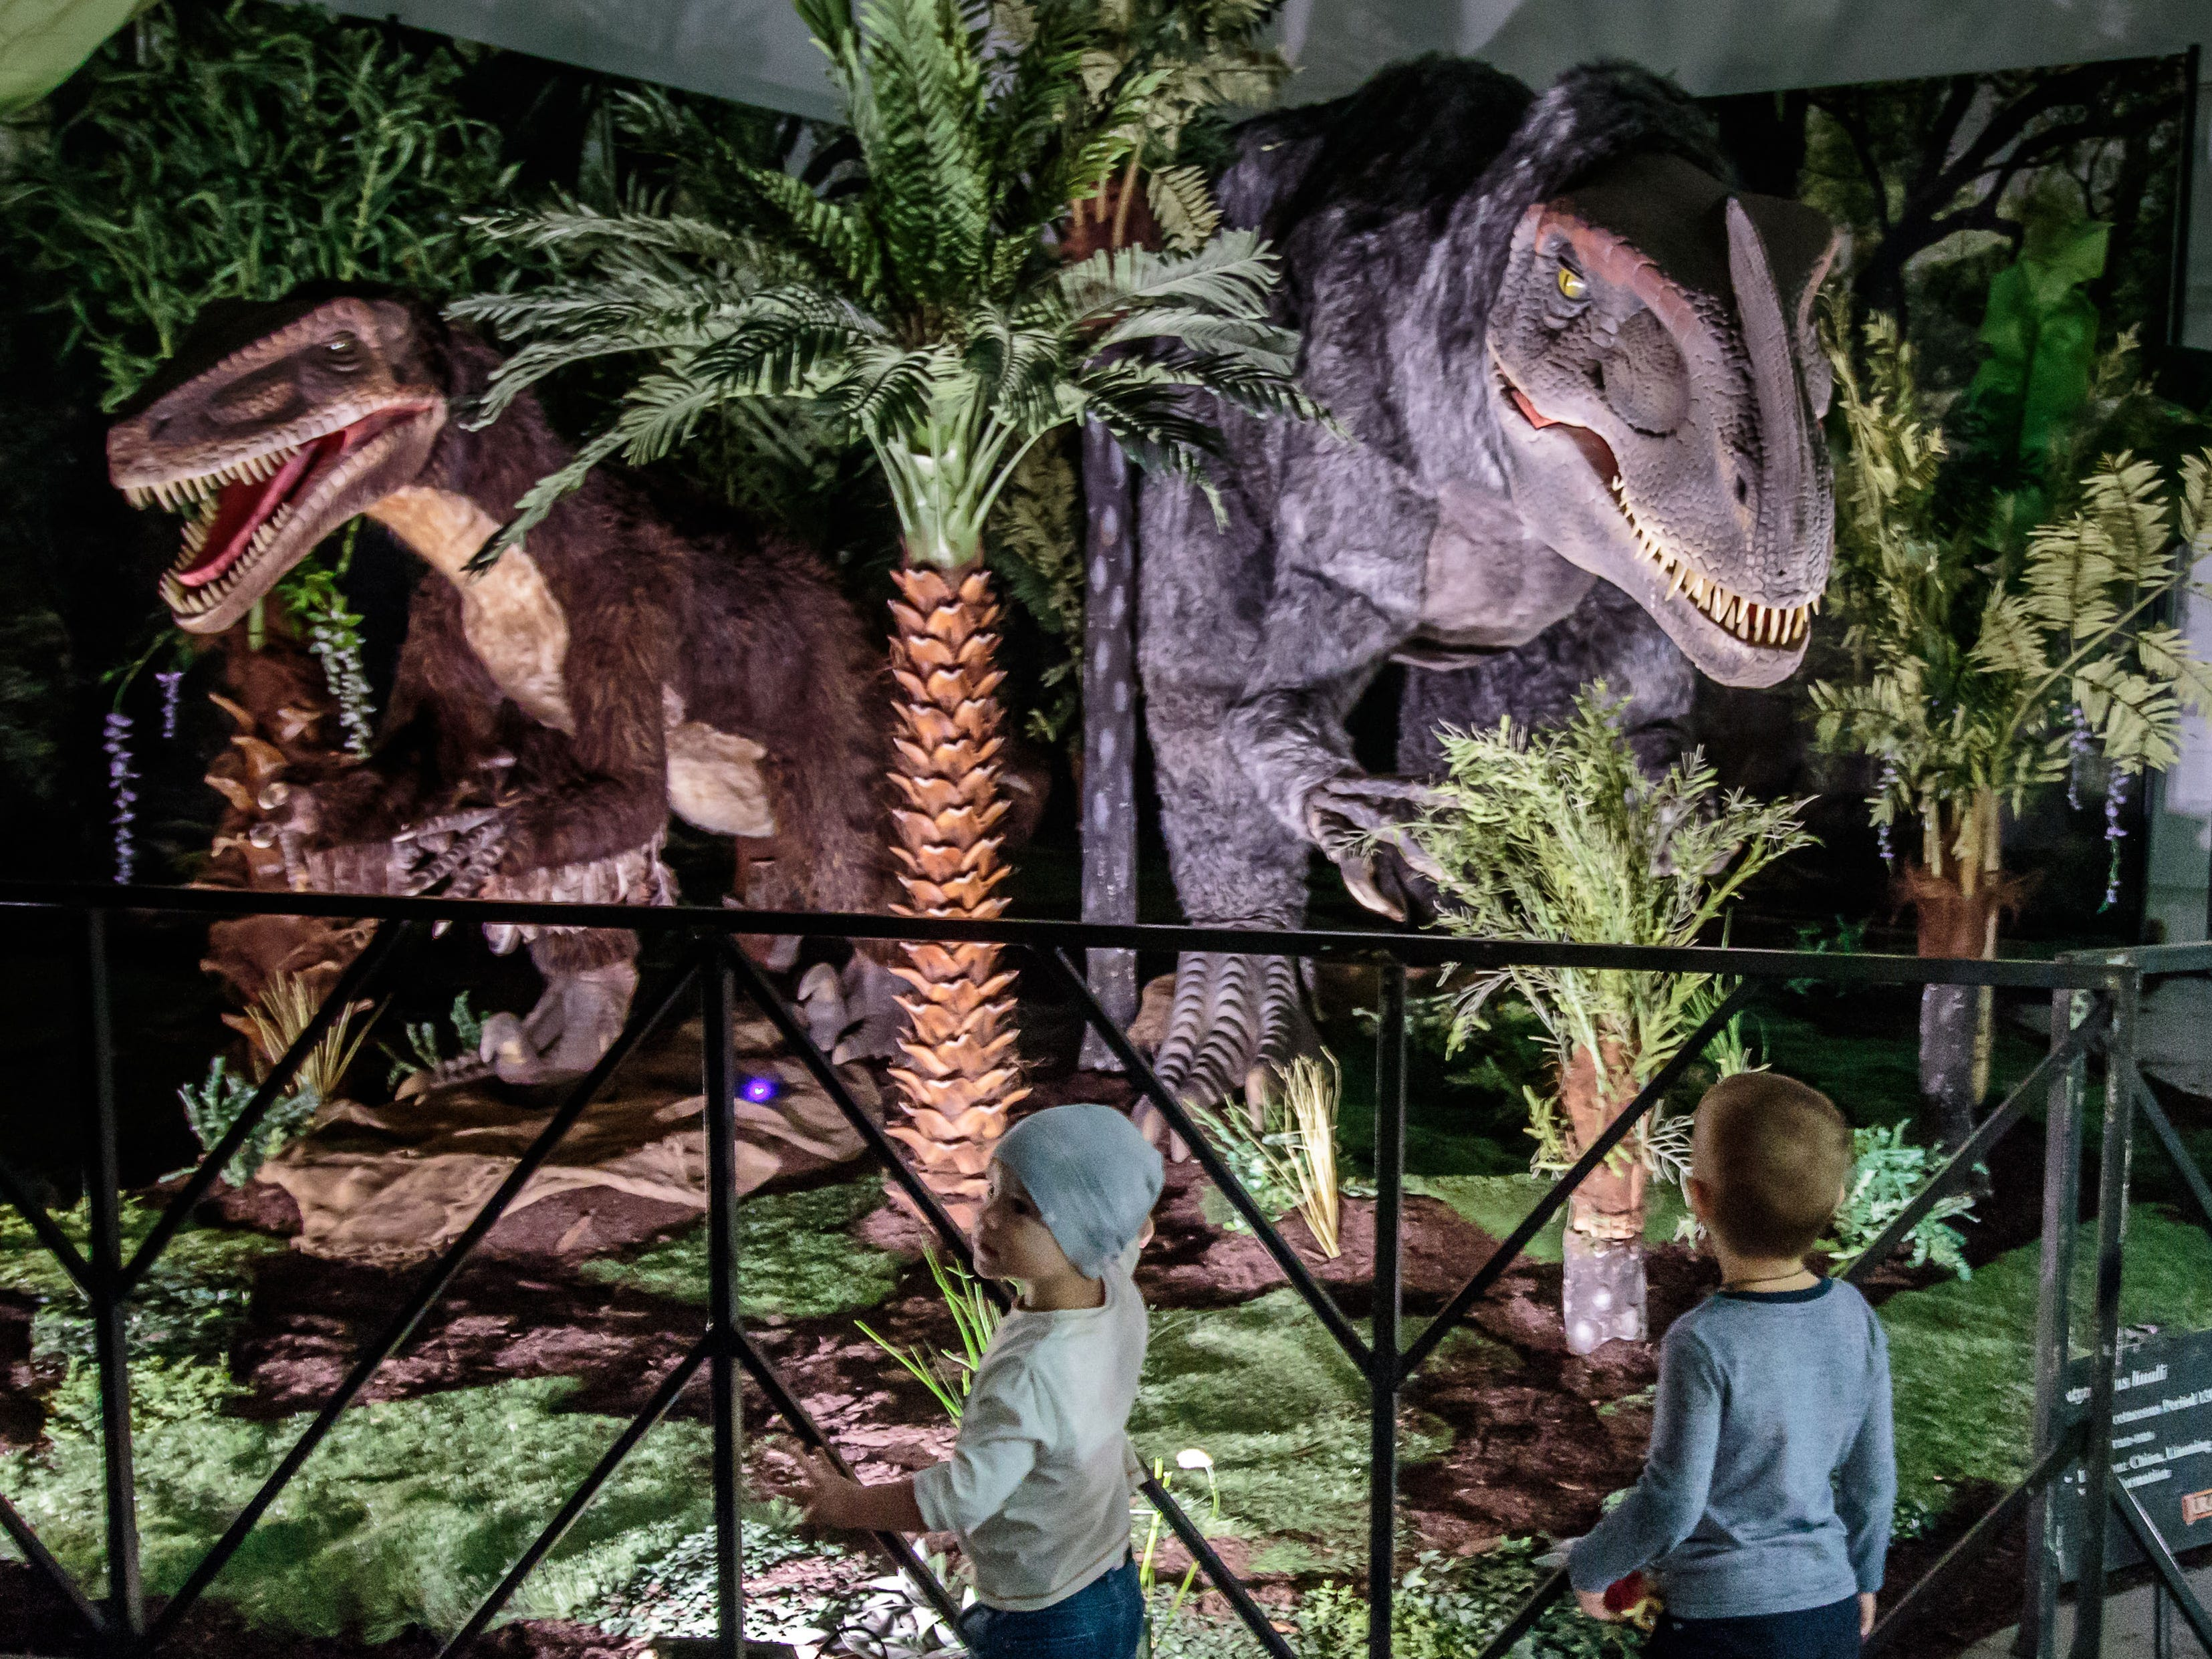 Nikita Pryzov (left), 2, and Max Soroka, 3, of Wisconsin Dells, check out two animatronic dinosaurs during their visit to Jurassic Quest at Wisconsin State Fair Park in West Allis on Sunday, Oct. 21, 2018. The three-day event featured more than 80 life-sized animatronic dinosaurs, fossils, games, crafts, bounce houses and more.